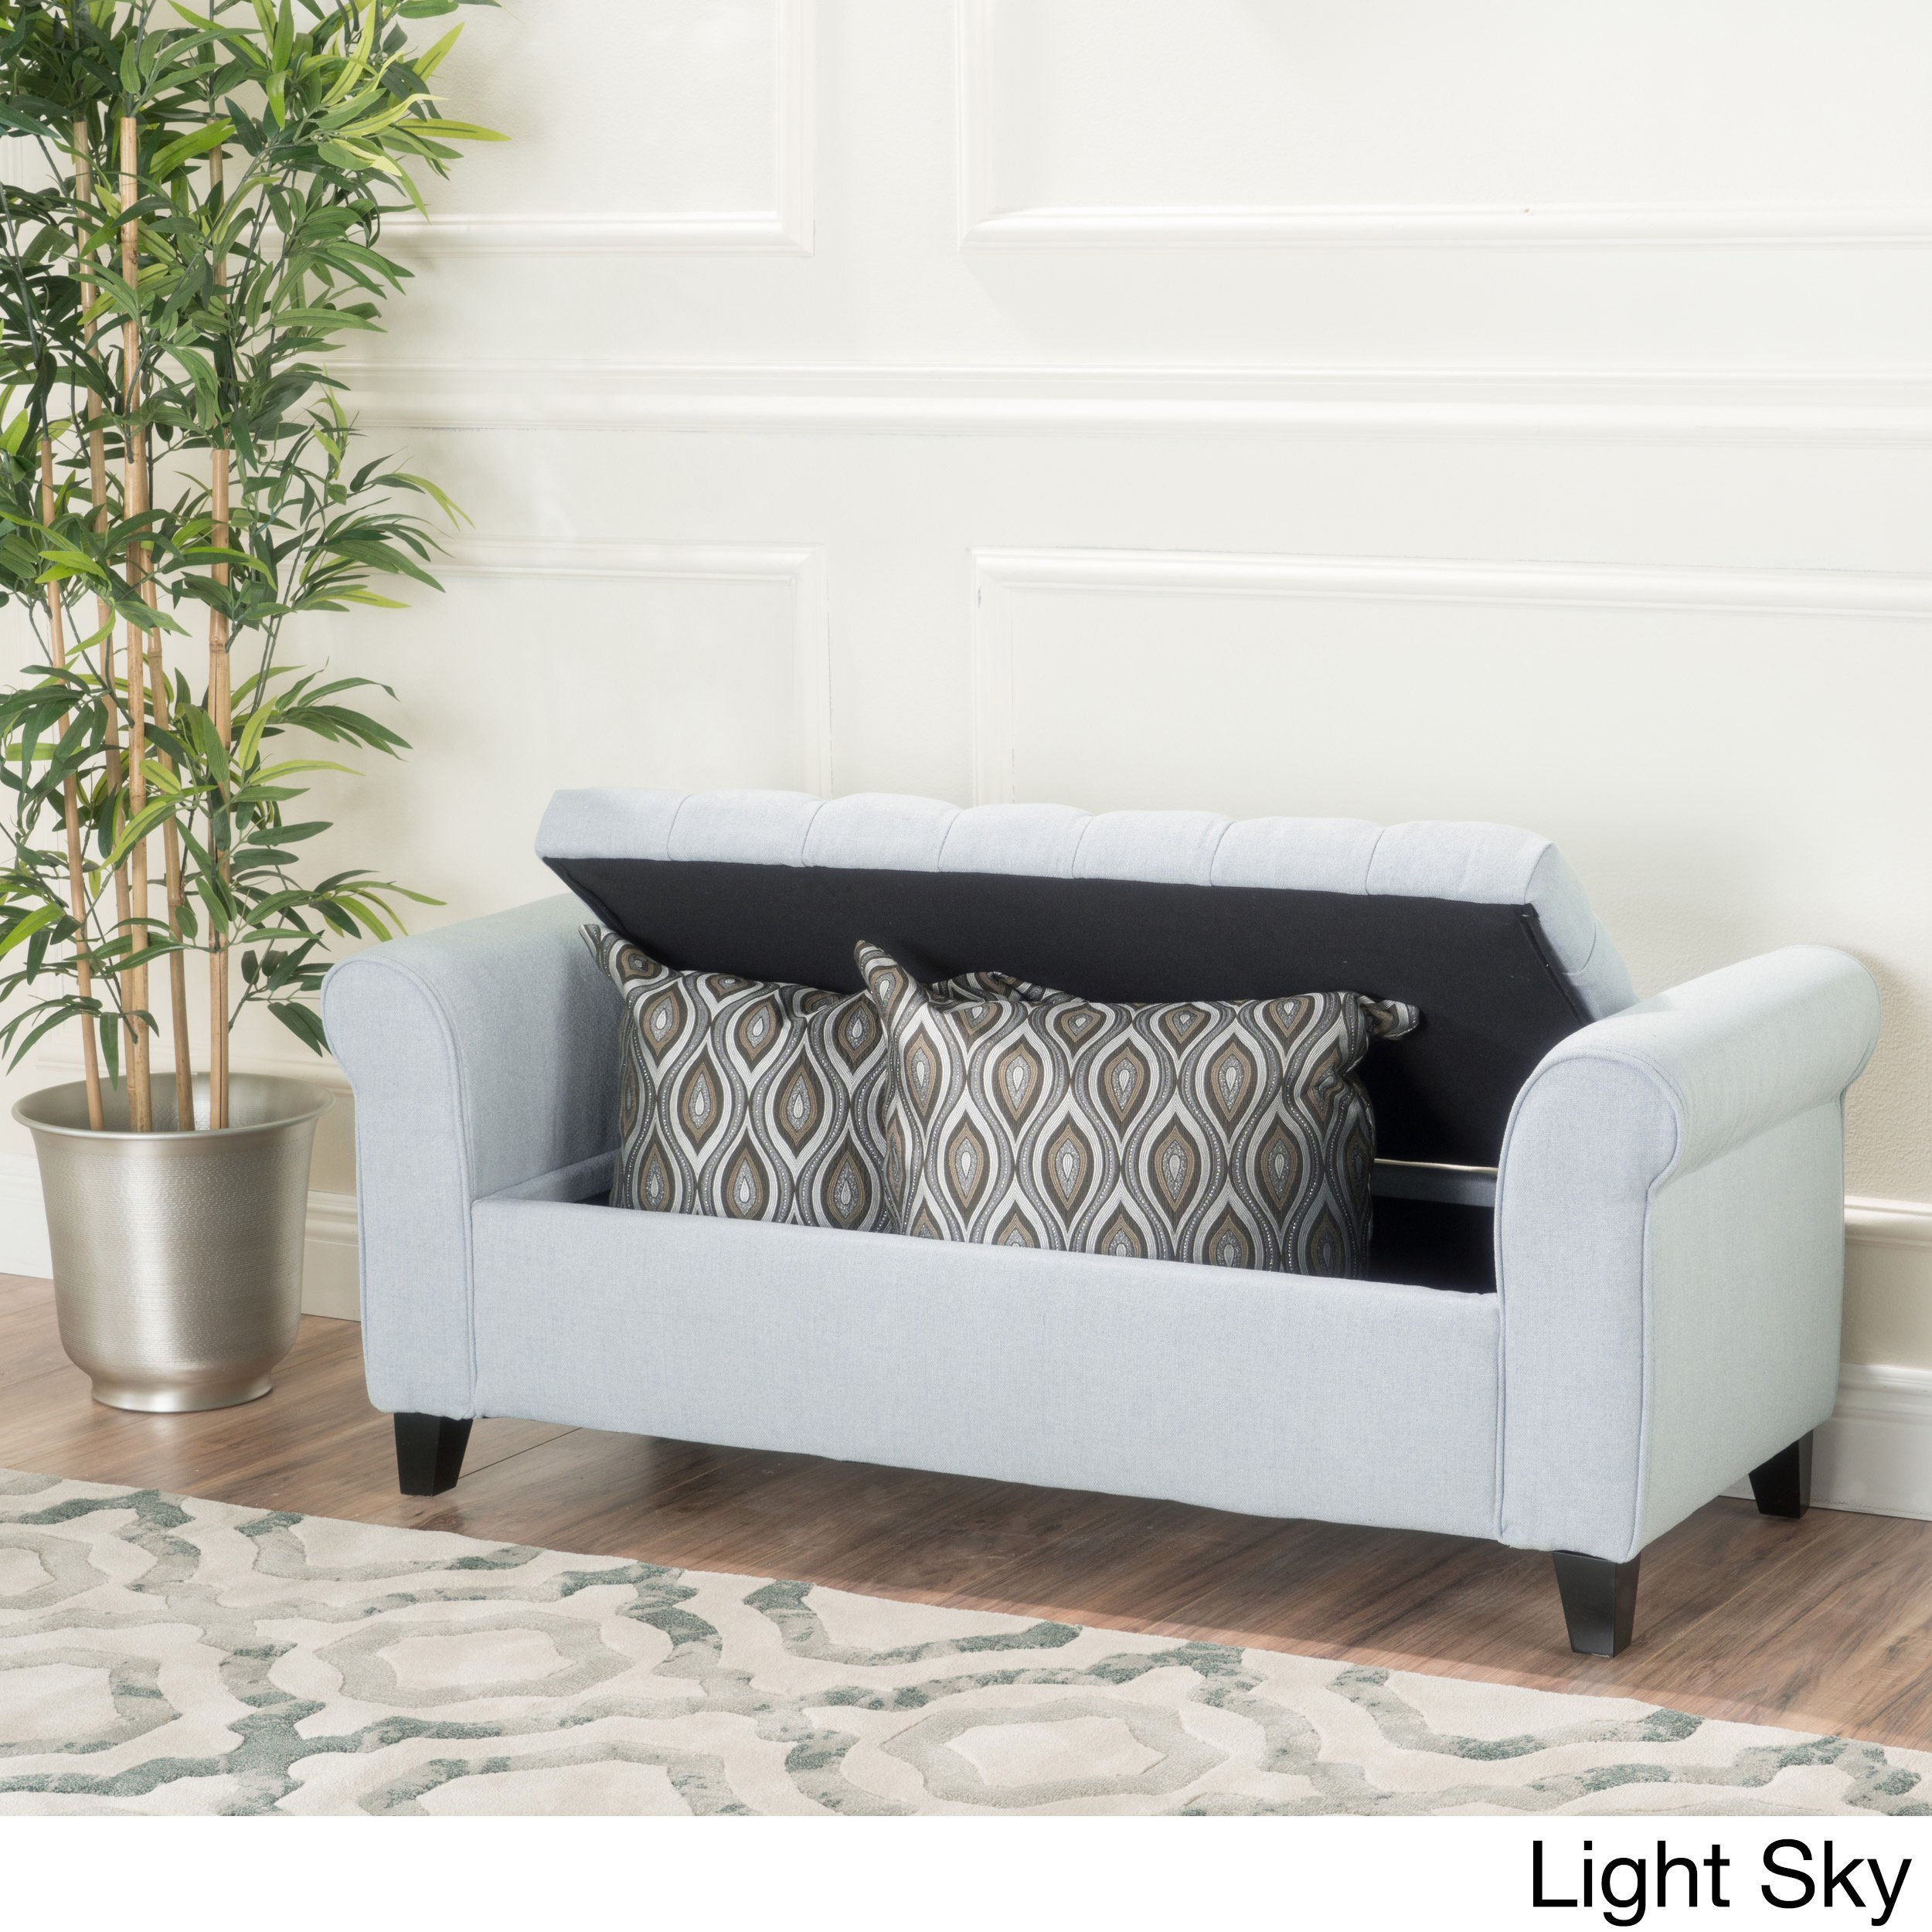 Casual Keiko Tufted Fabric Armed Fabric Wood Solid Flip Top Storage Ottoman Bench (Light Sky) by Plugtronics